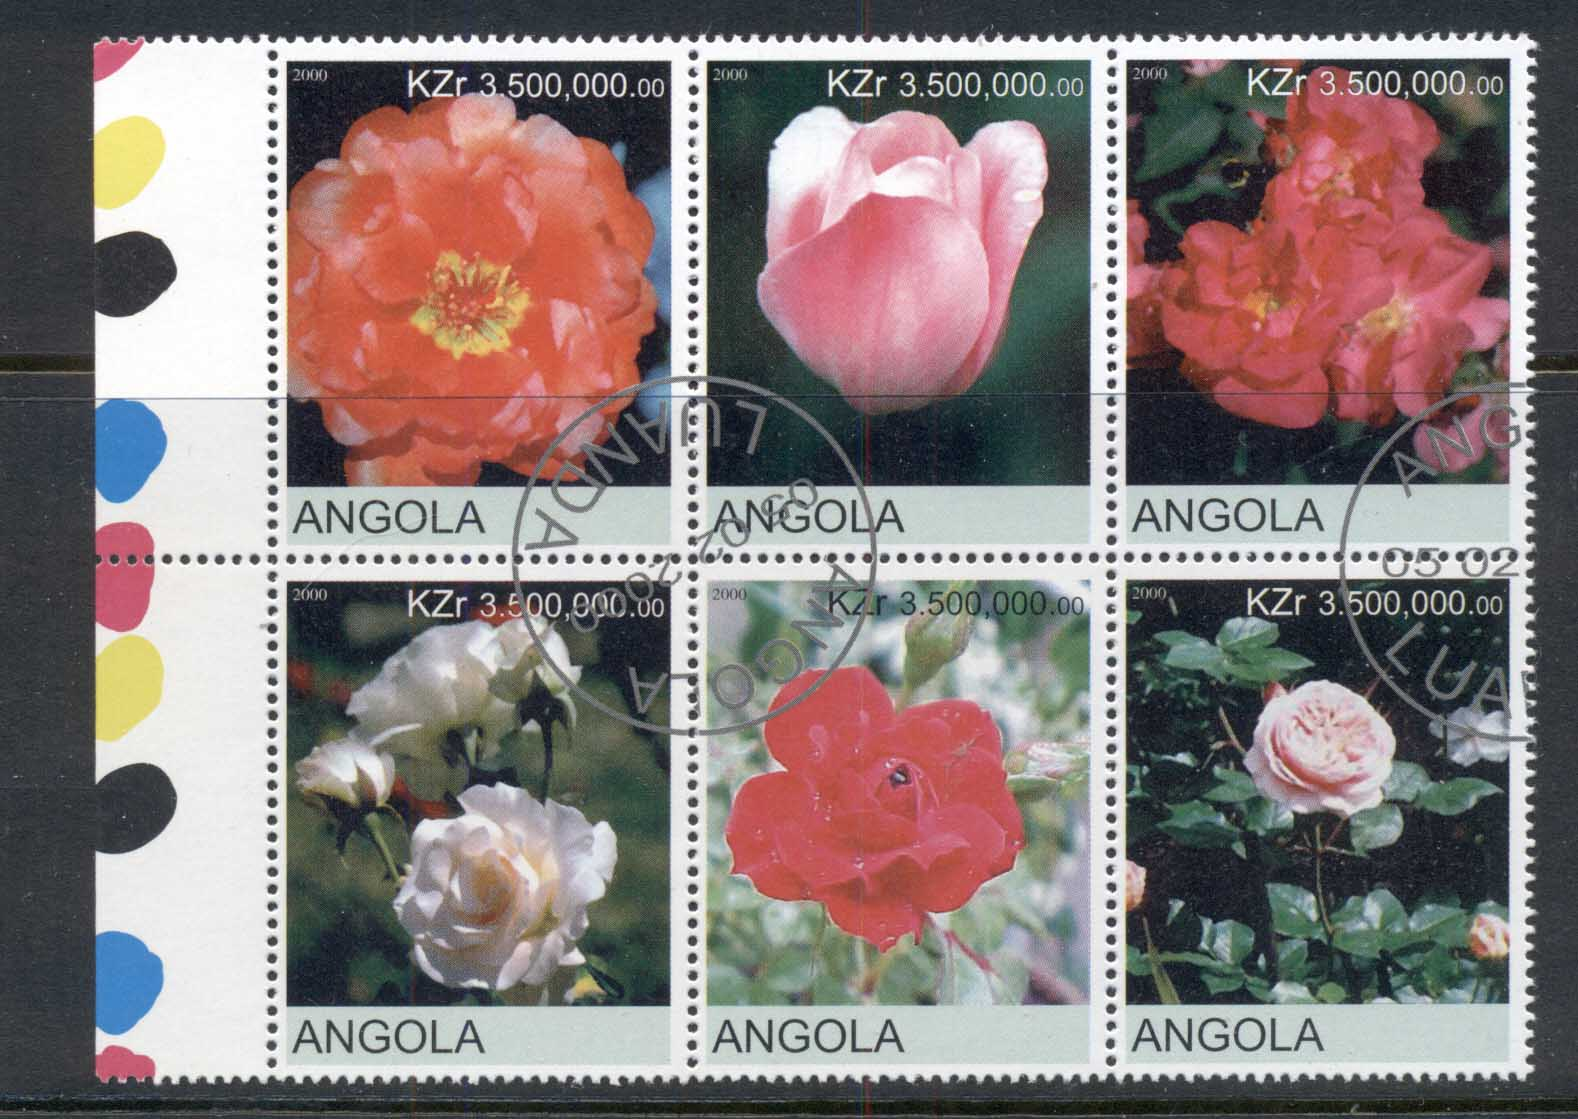 Angola 2000 Flowers, Tulips, Roses blk6 (rebel Issue) CTO